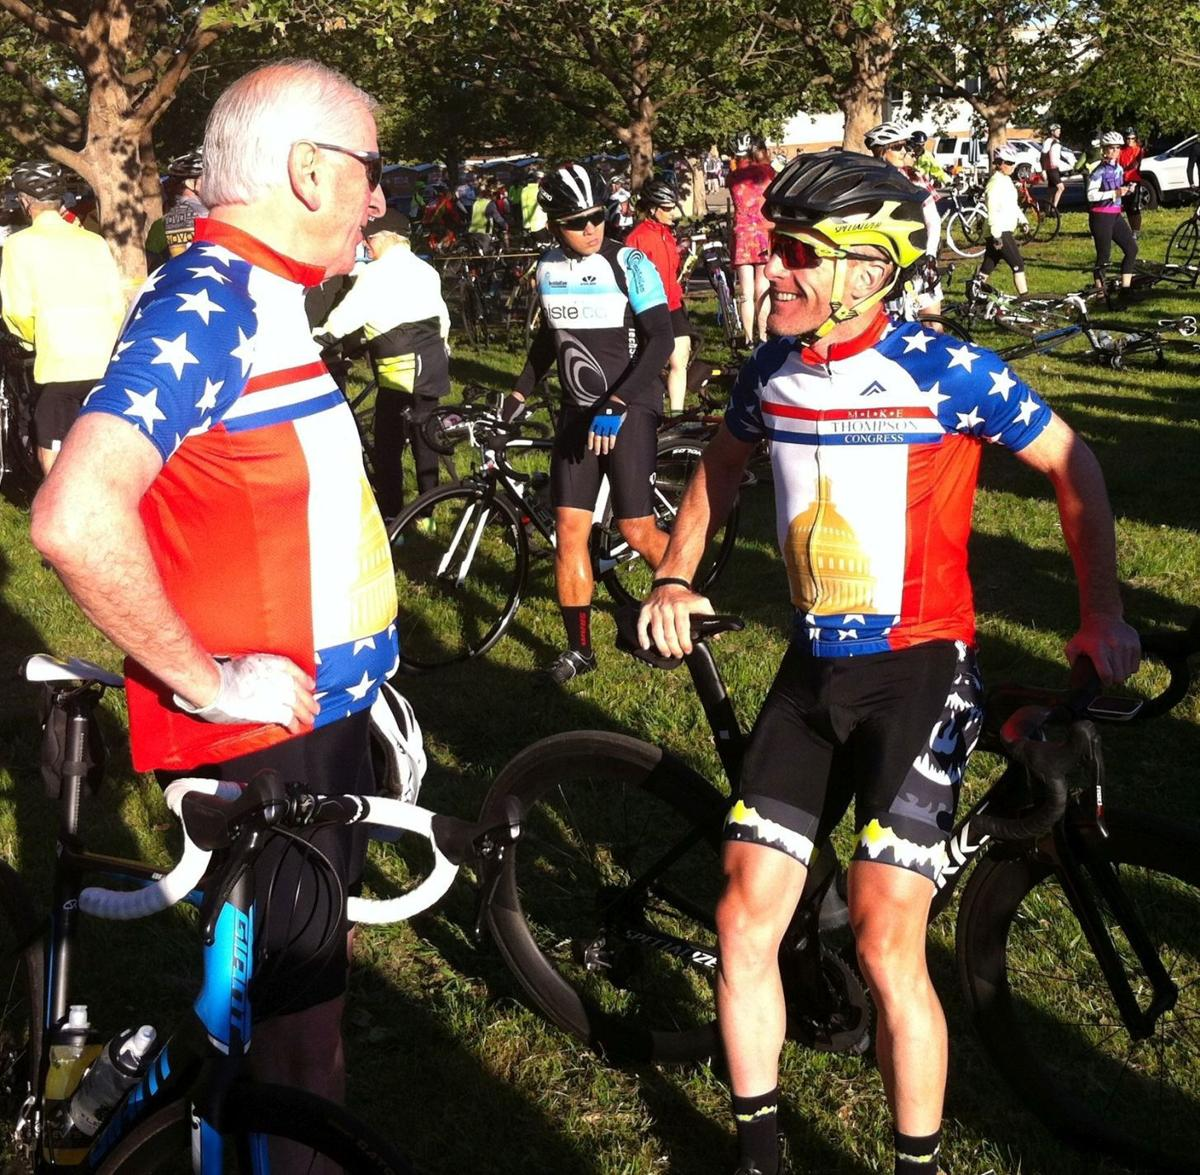 Mike Thompson and Levi Leipheimer